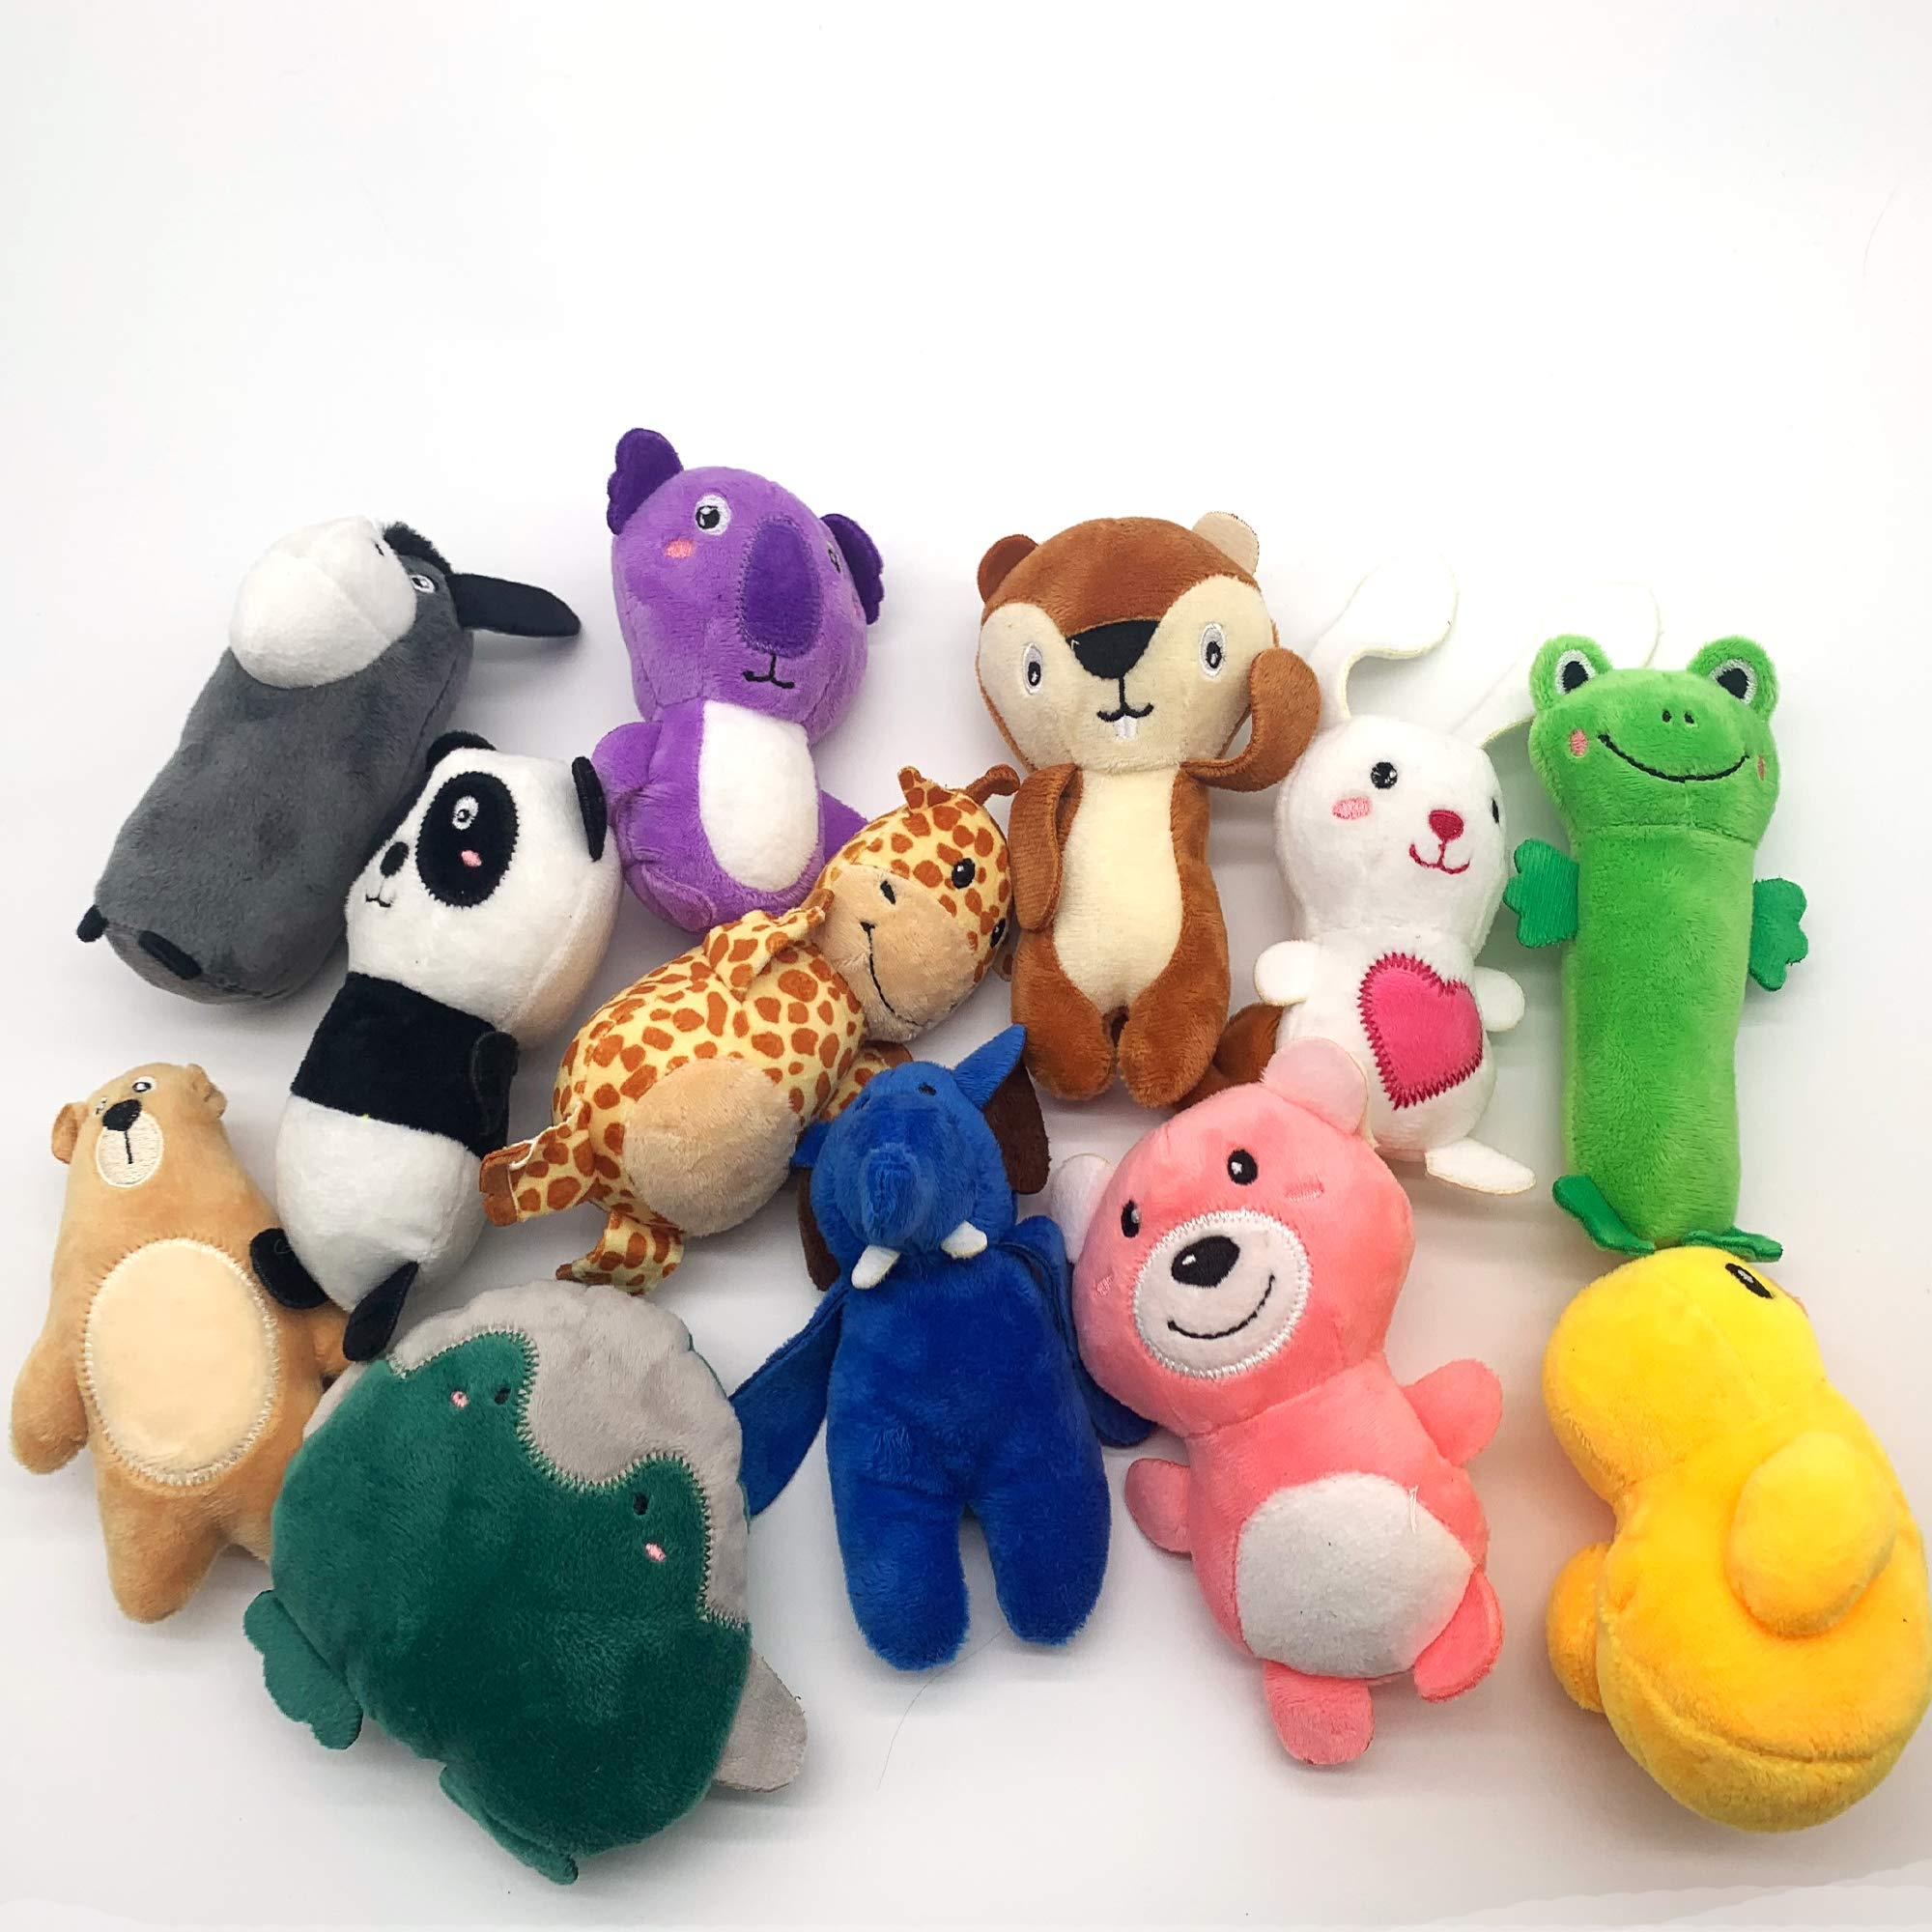 Jalousie 12 Pack Plush Animal Dog Toy Dog Squeaky Toys Cute Pet Plush Toys Stuffed Puppy Chew Toys for Small Medium Dog Puppy Pets - Bulk Dog Toys